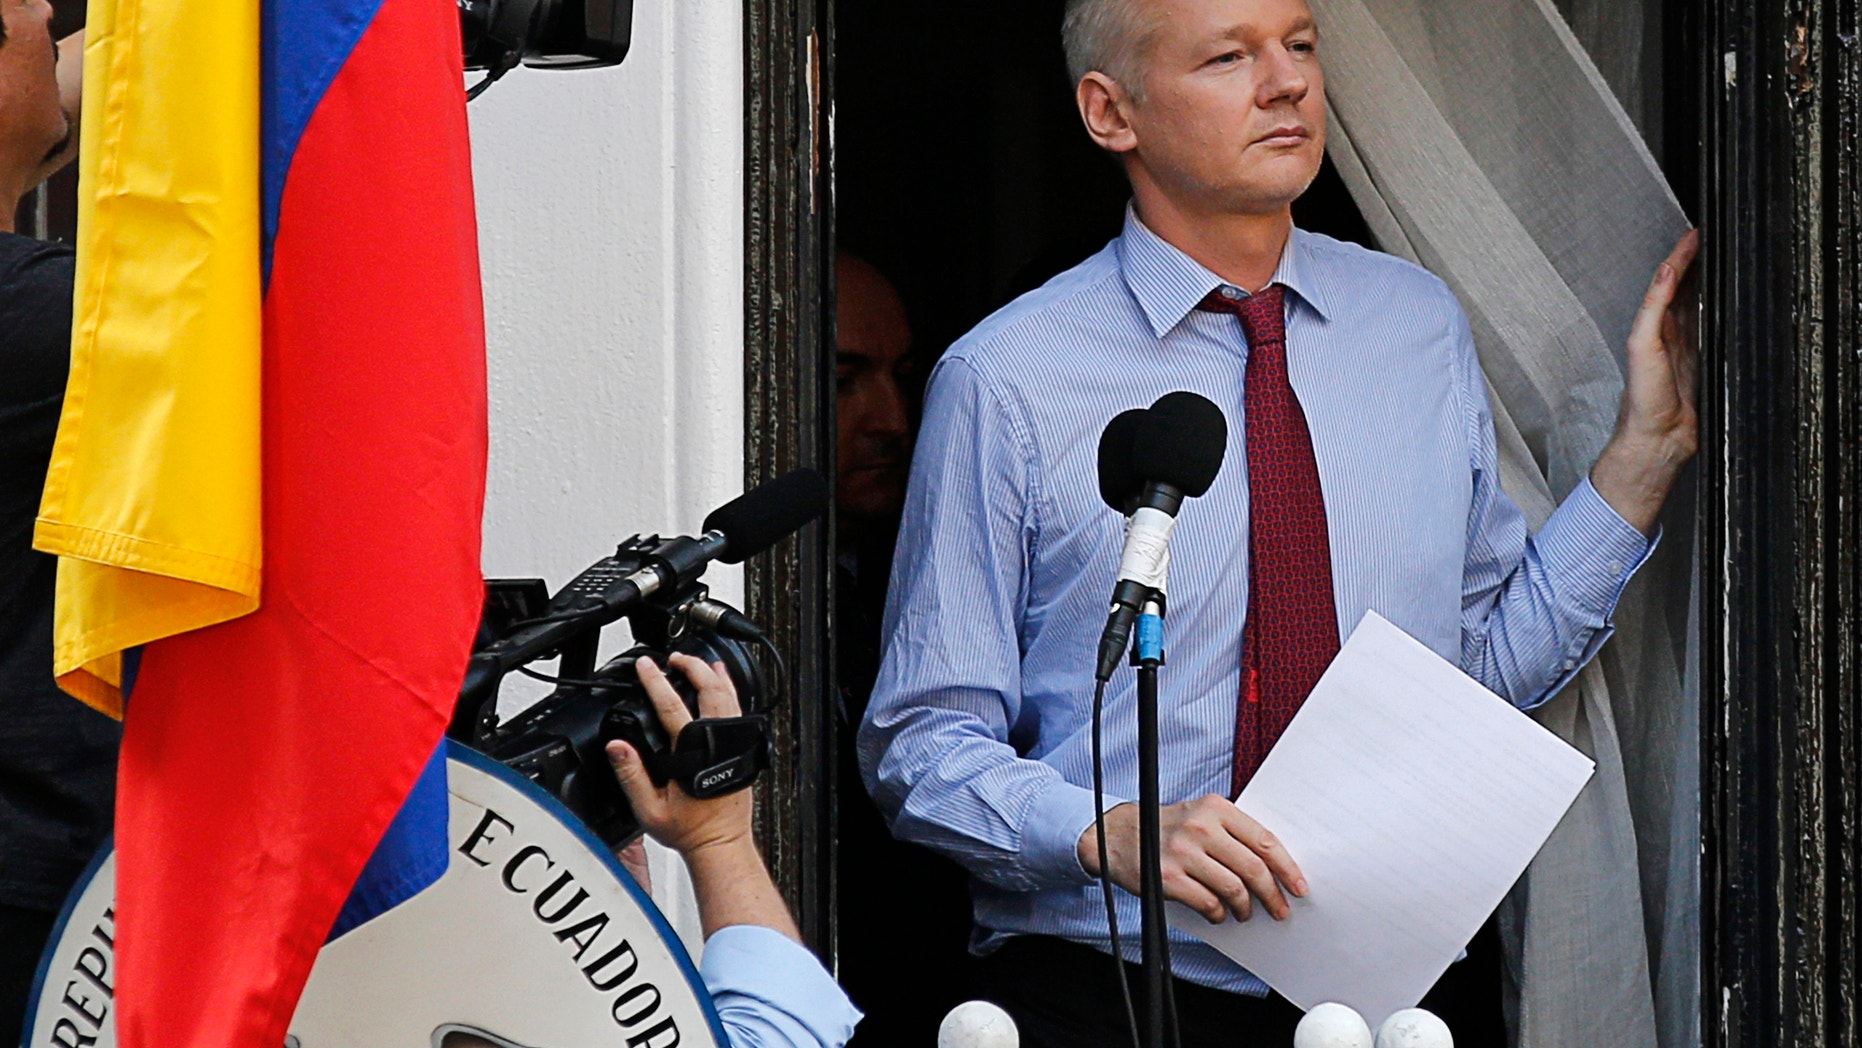 Wikileaks founder Julian Assange arrives to speak from the balcony of Ecuador's embassy, where he is taking refuge in London August 19, 2012.